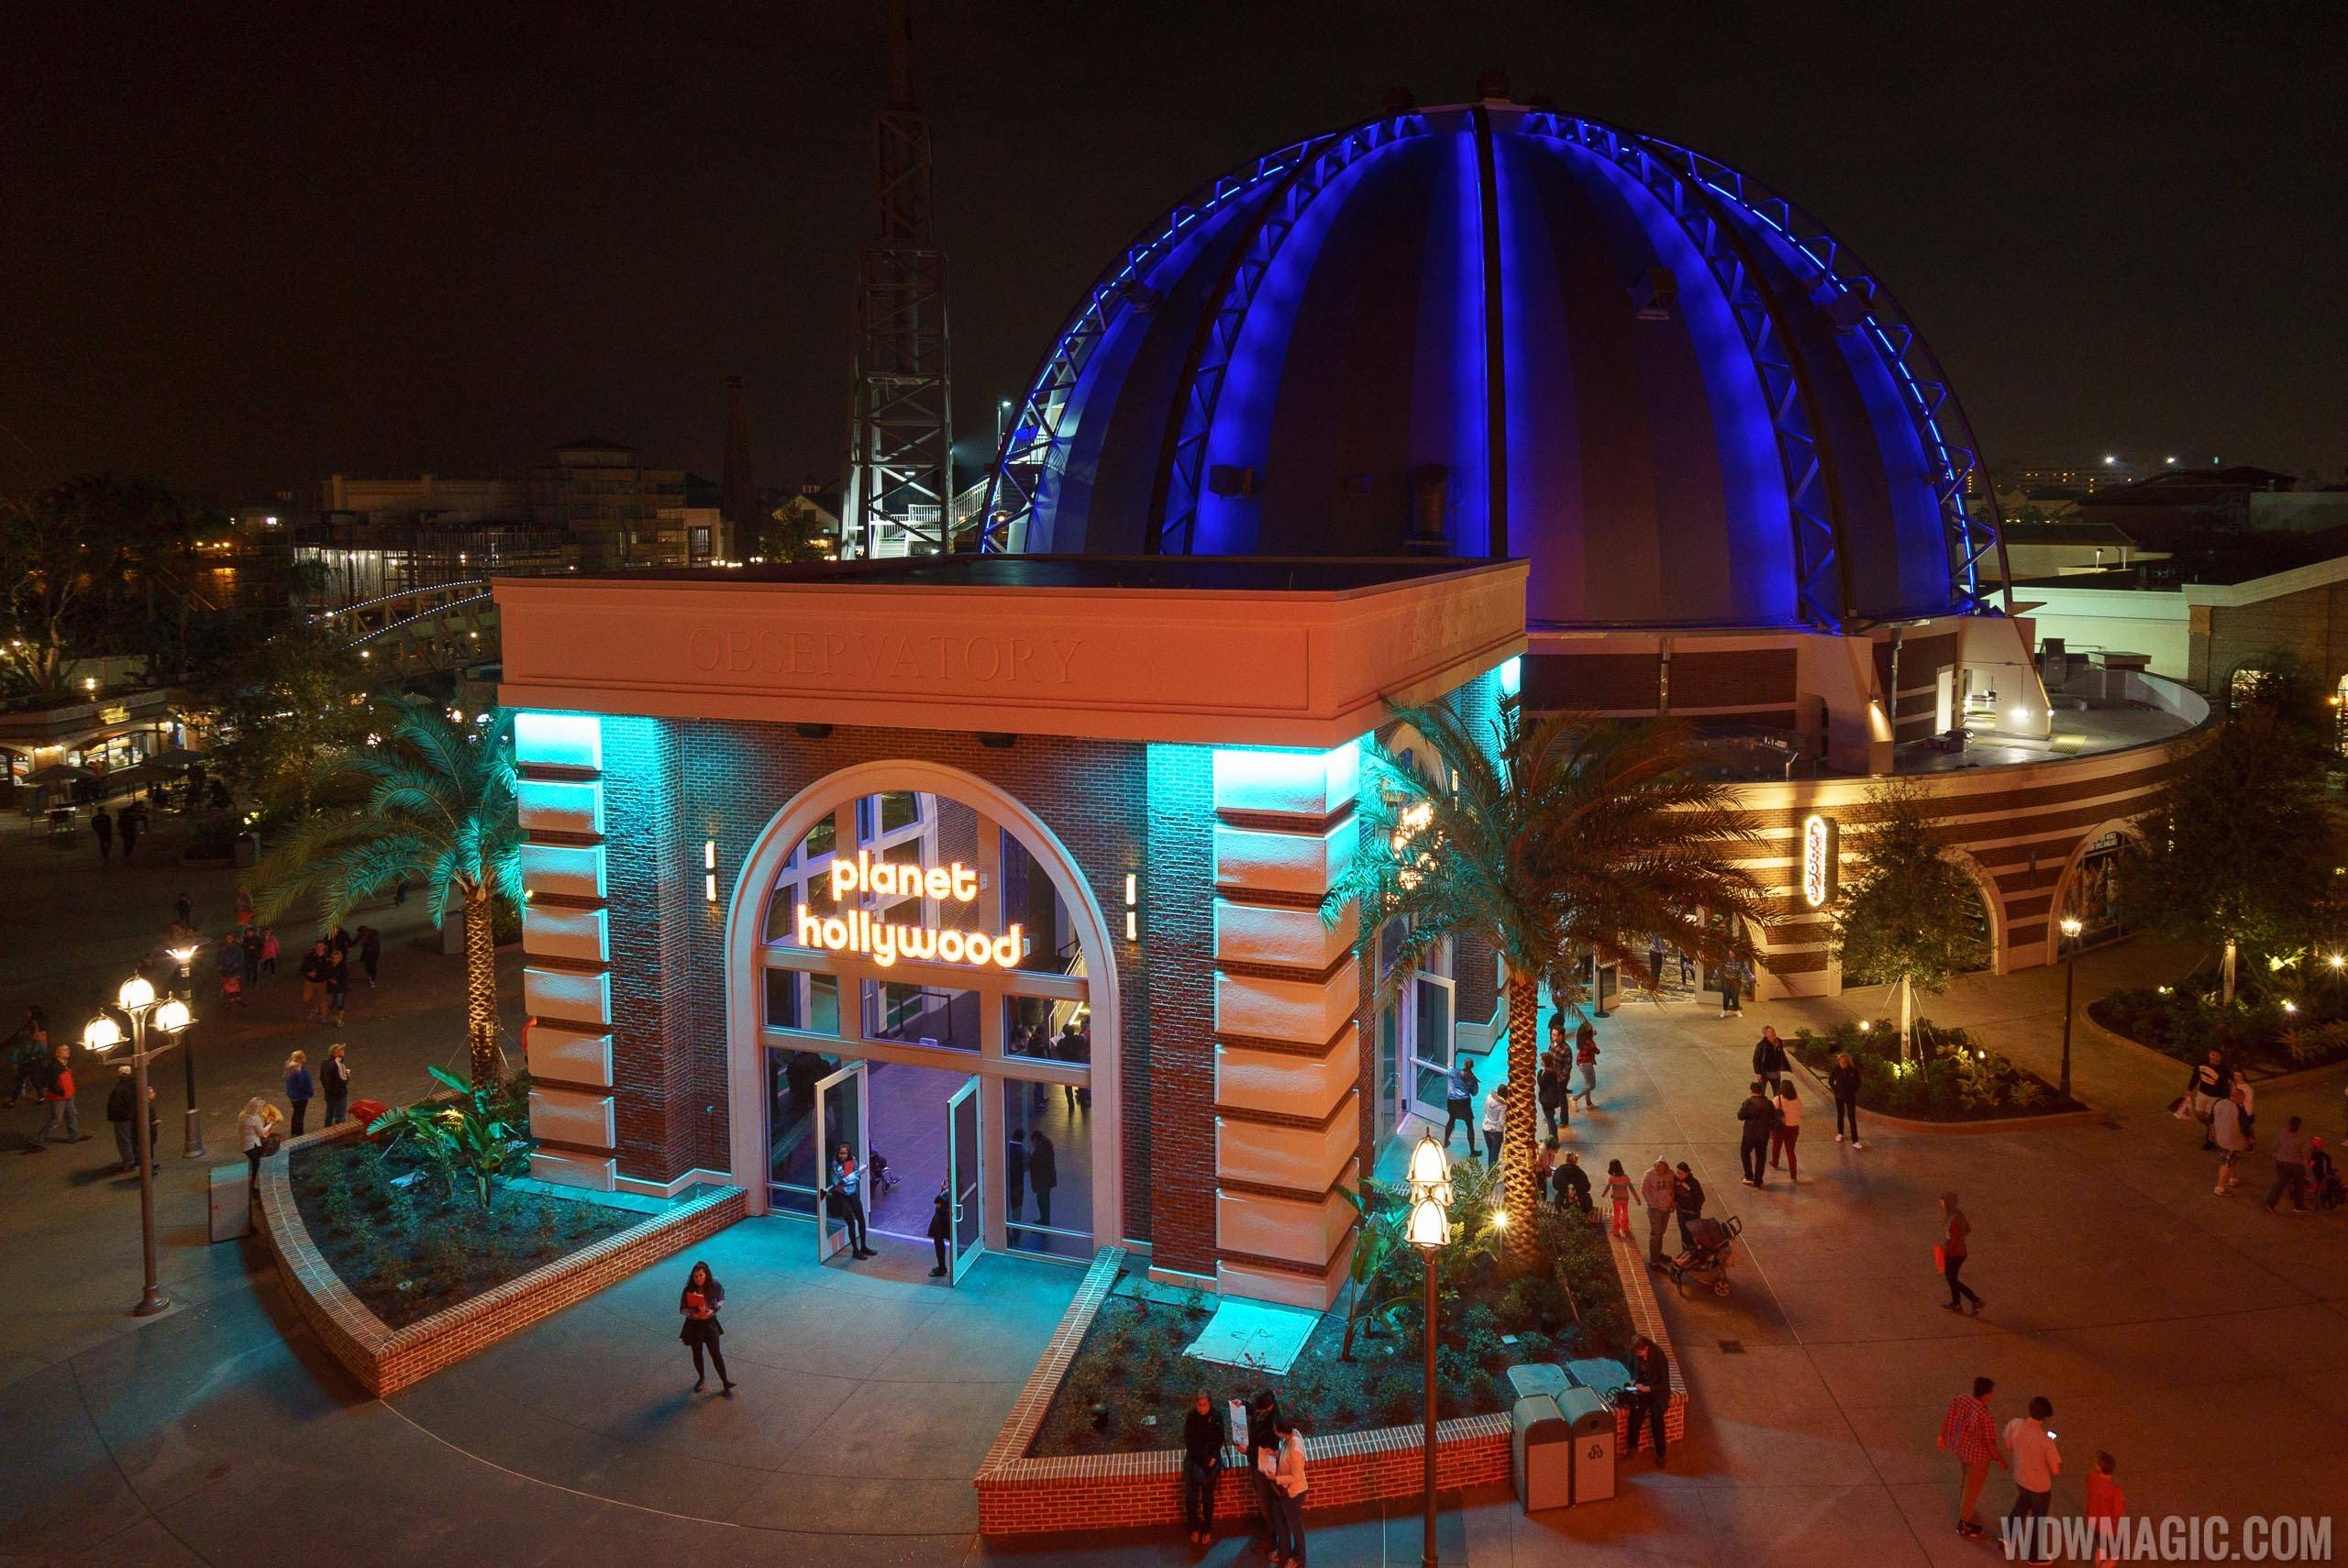 Planet Hollywood Observatory opening day